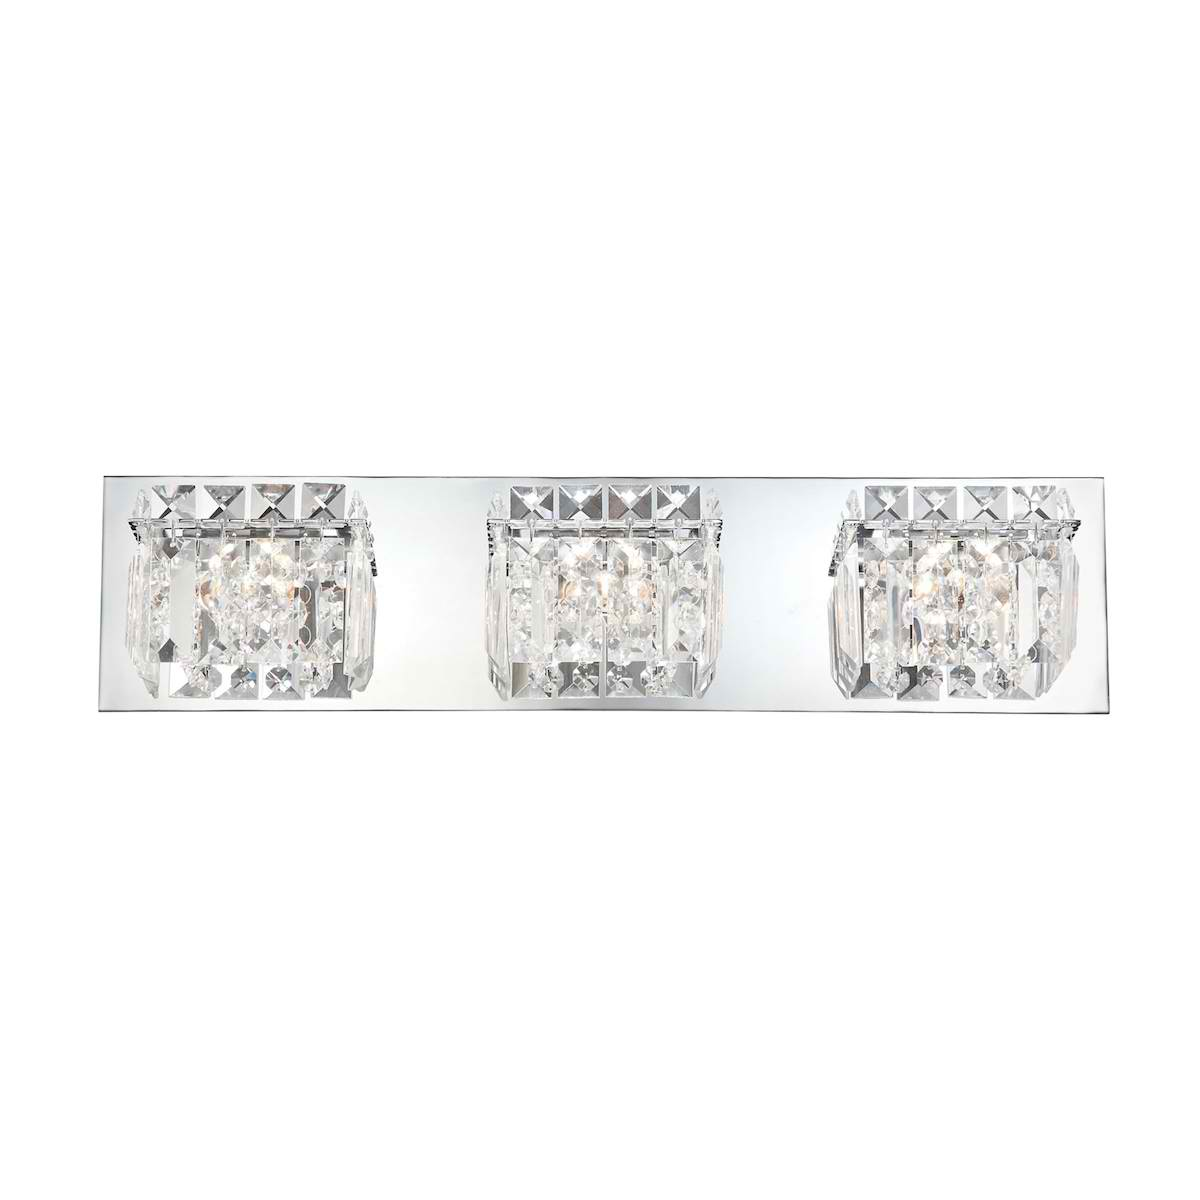 Crown Vanity - 3 Light Clear Crystal glass/ Chrome finish